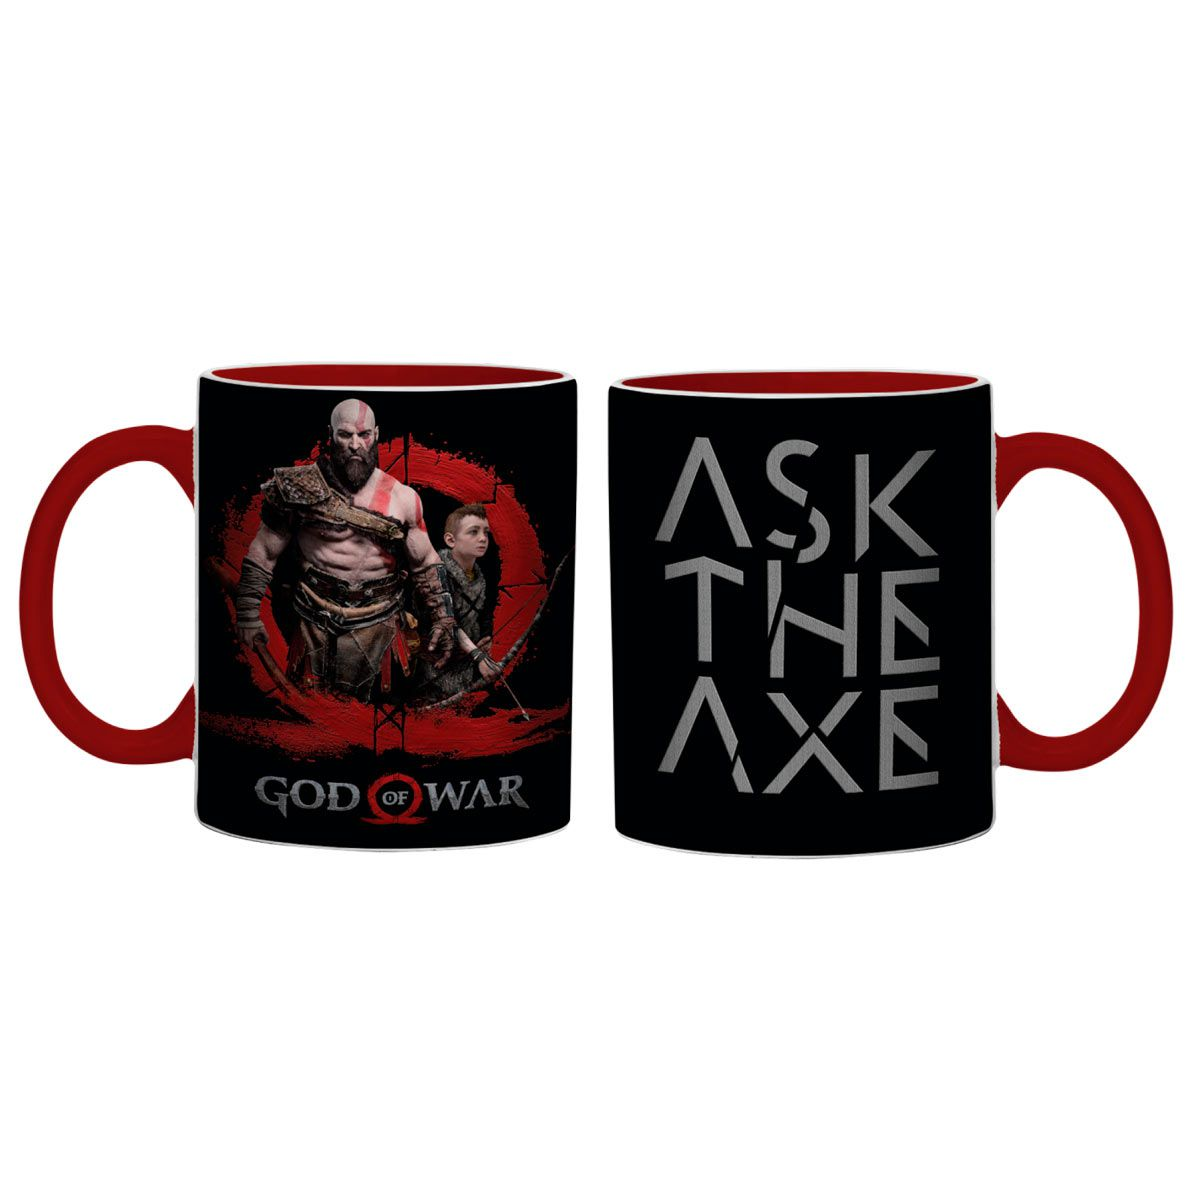 Caneca Porcelana Kratos axe God of Wars